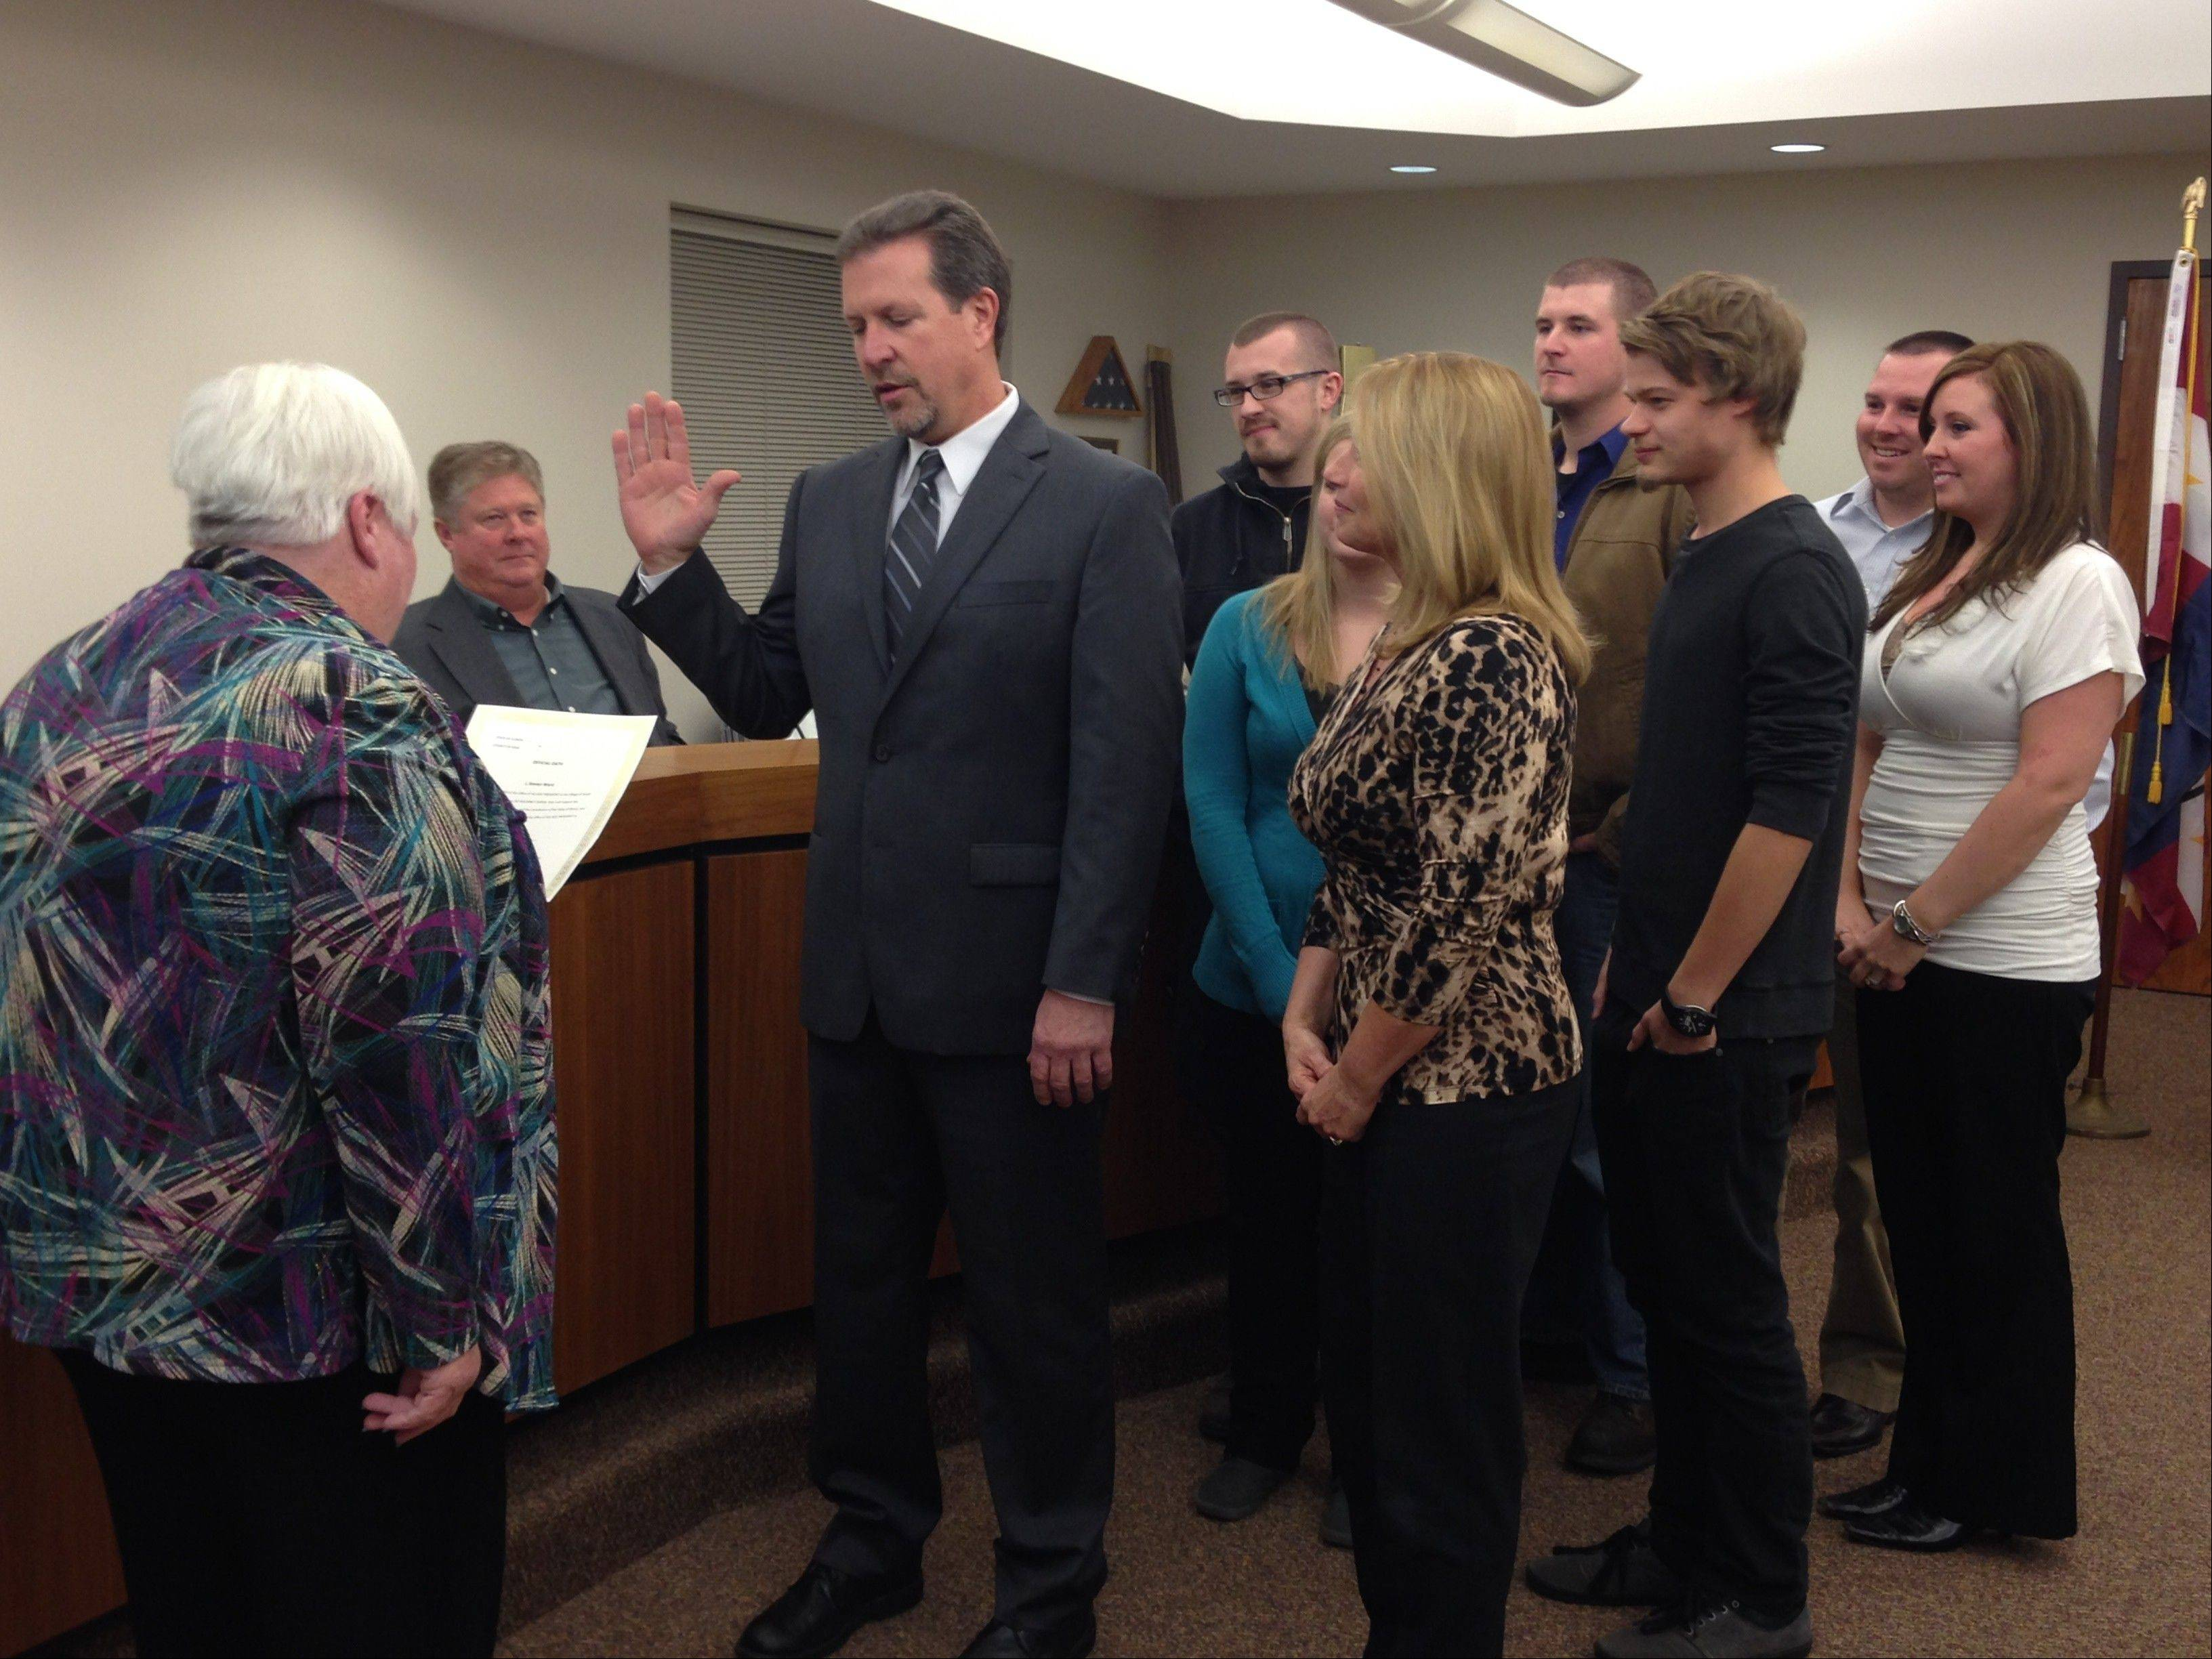 New South Elgin Village President Steve Ward, surrounded by his fiancee and family, is sworn into office by Village Clerk Margo Gray on Monday night.